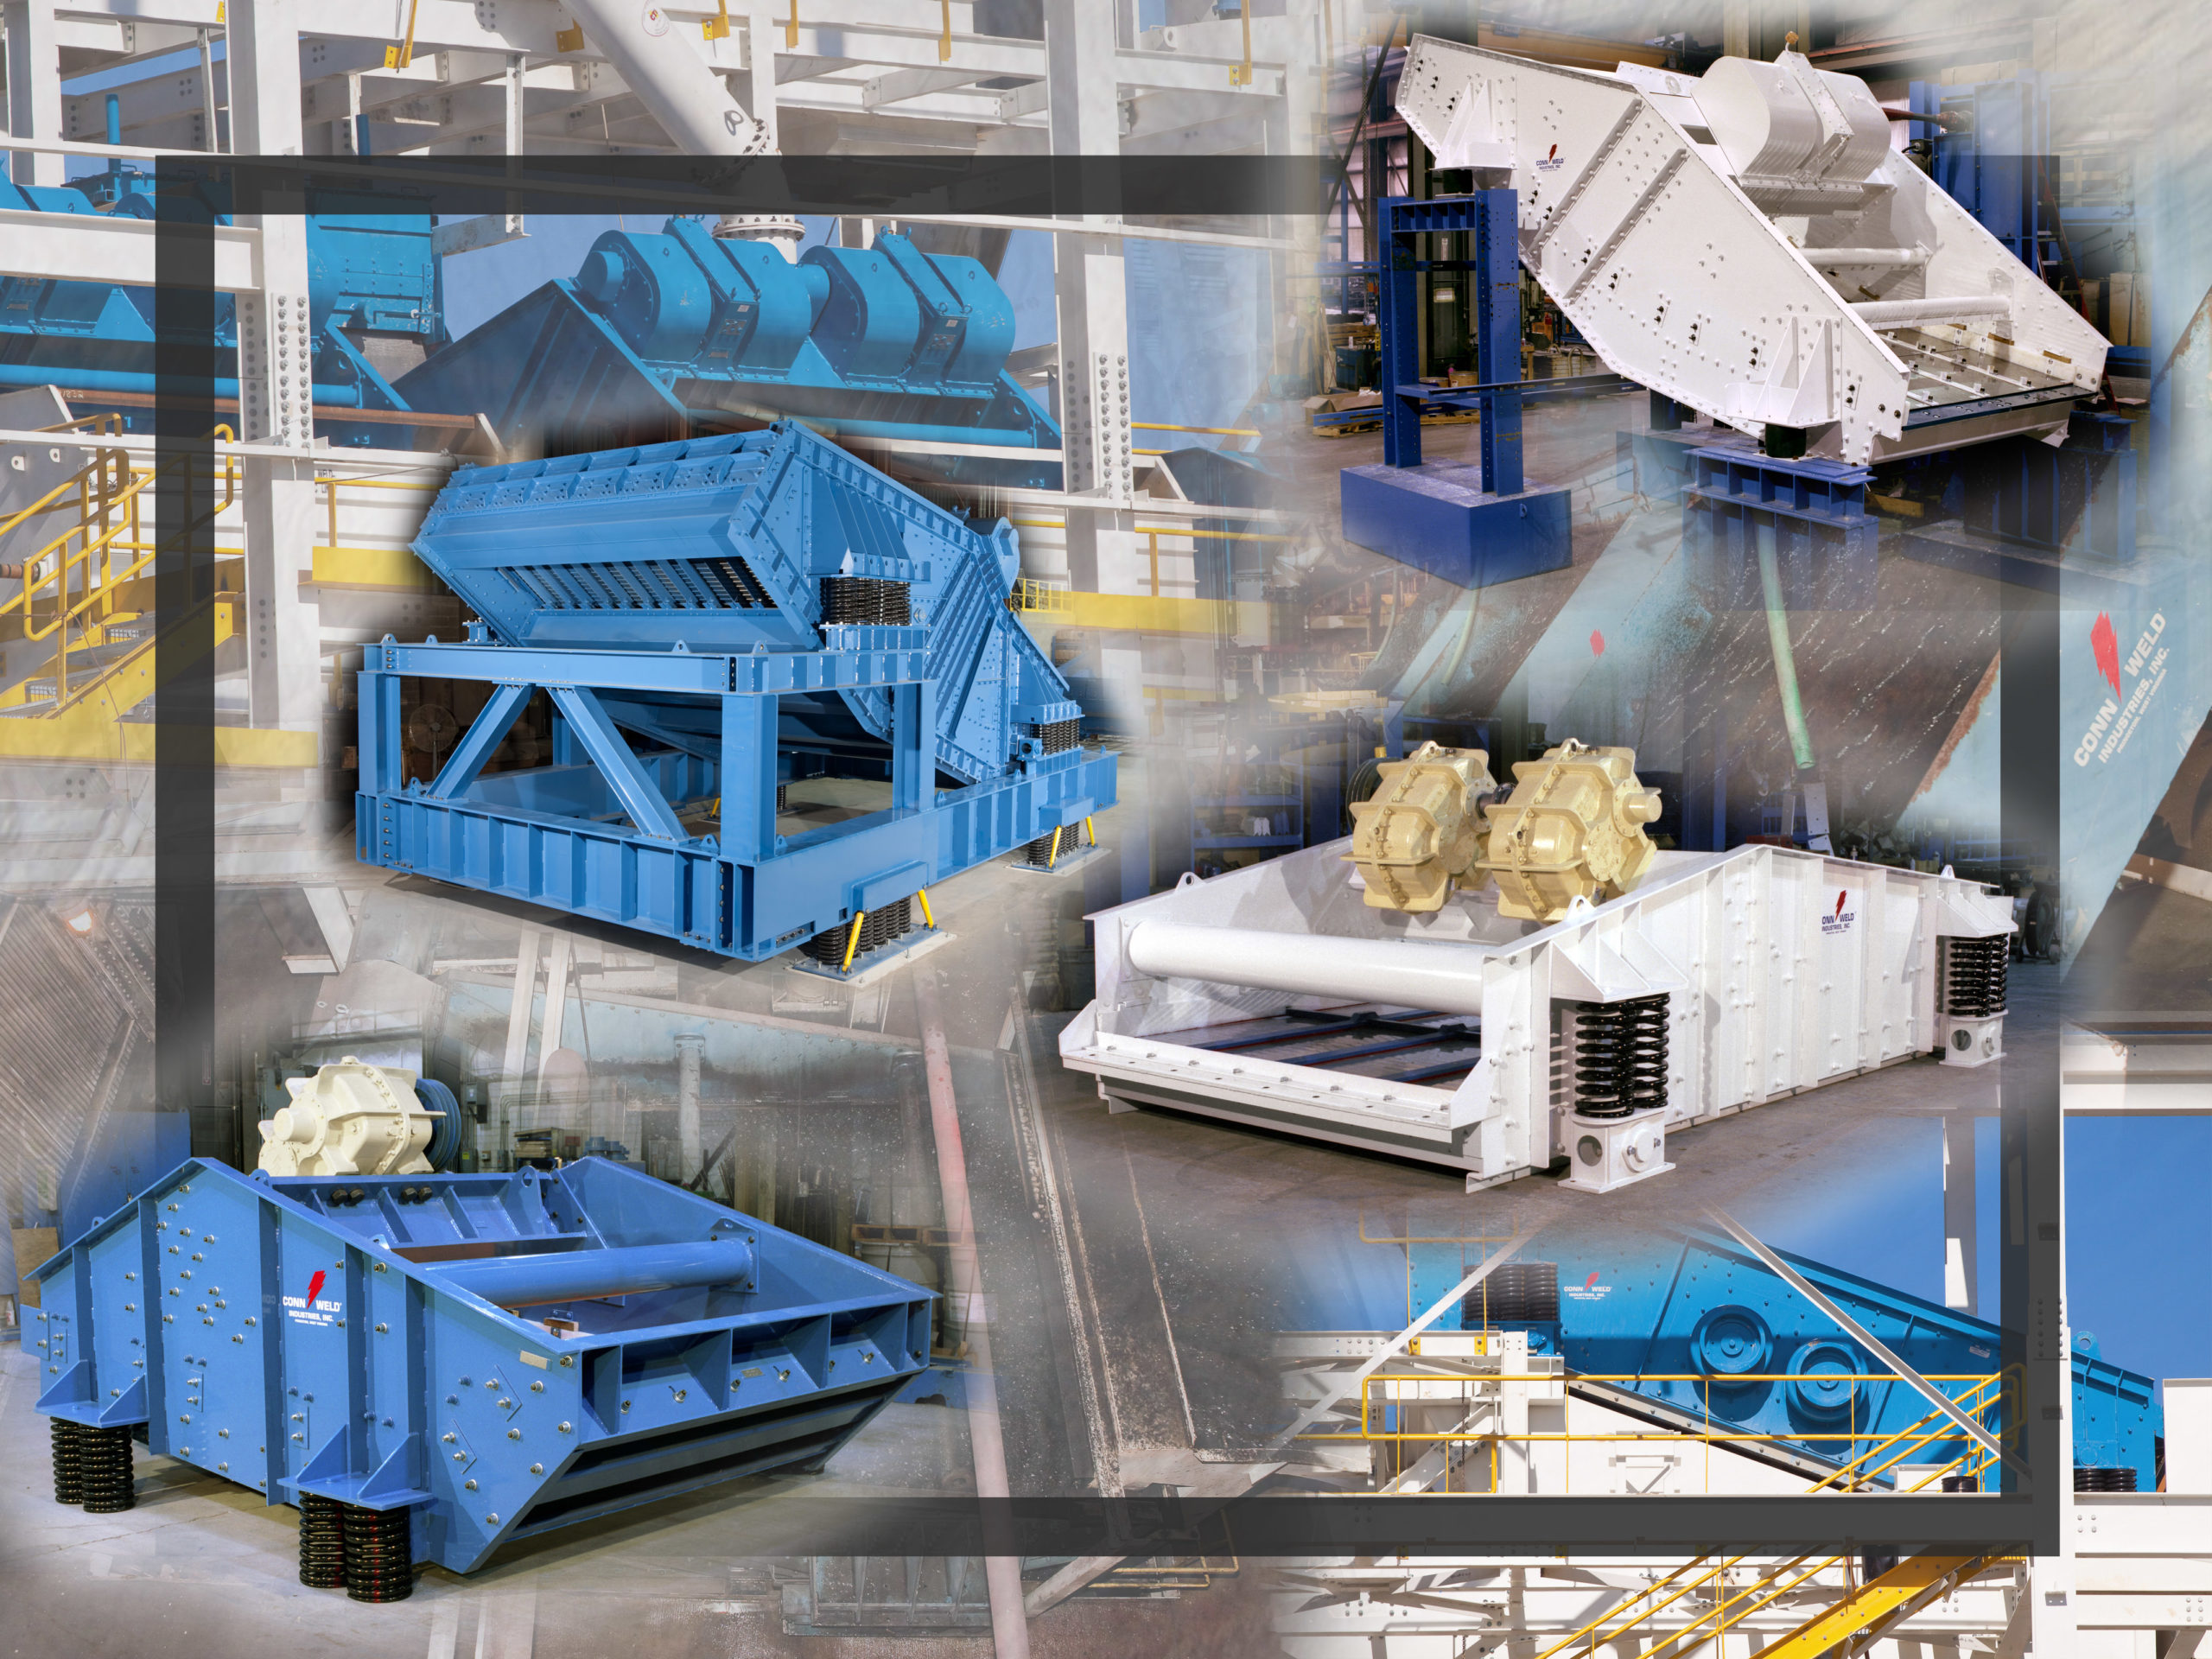 A collage of vibrating screen equipment